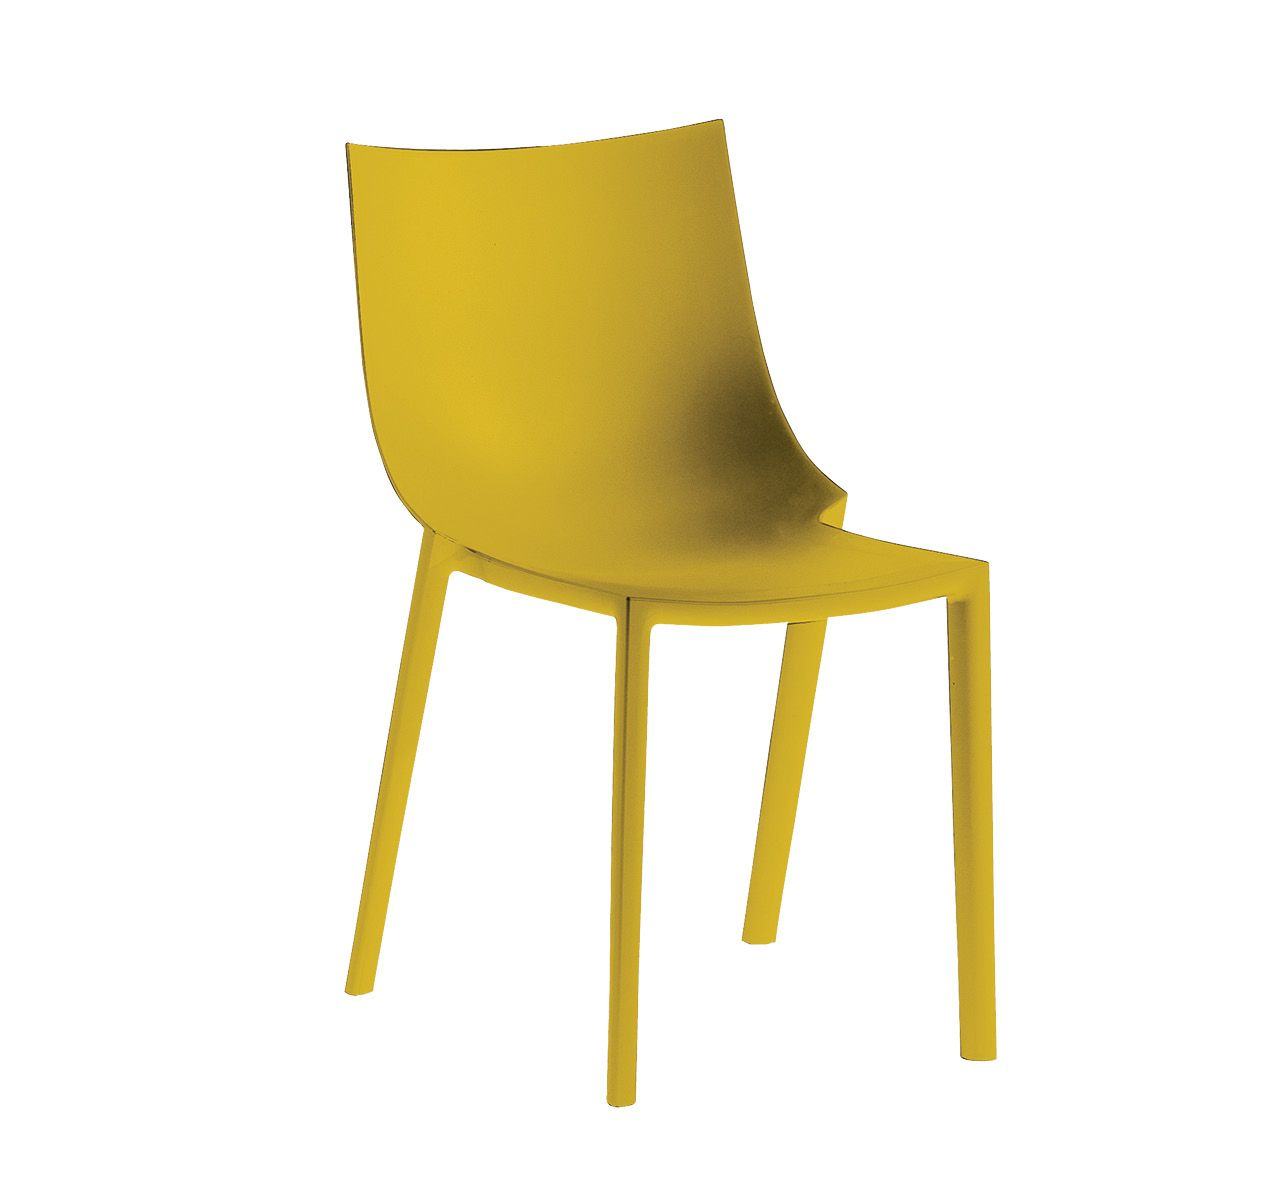 Light Yellow Bedroom Driade Bo Chair 4pcs Philippe Starck Panik Design